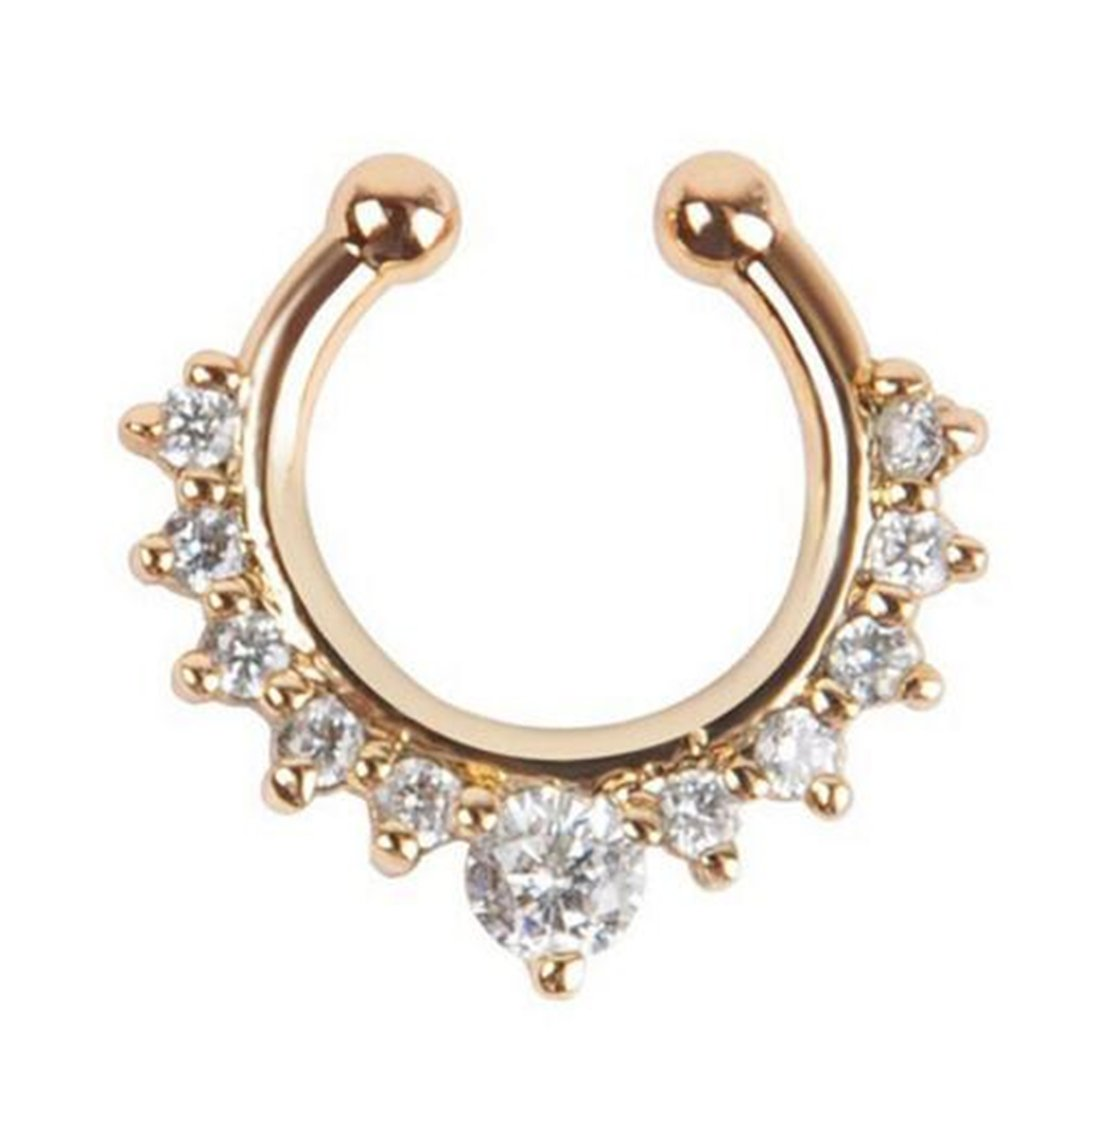 Tmrow 1pc Crystal Diamond False C Nose Ring For Women,Silver